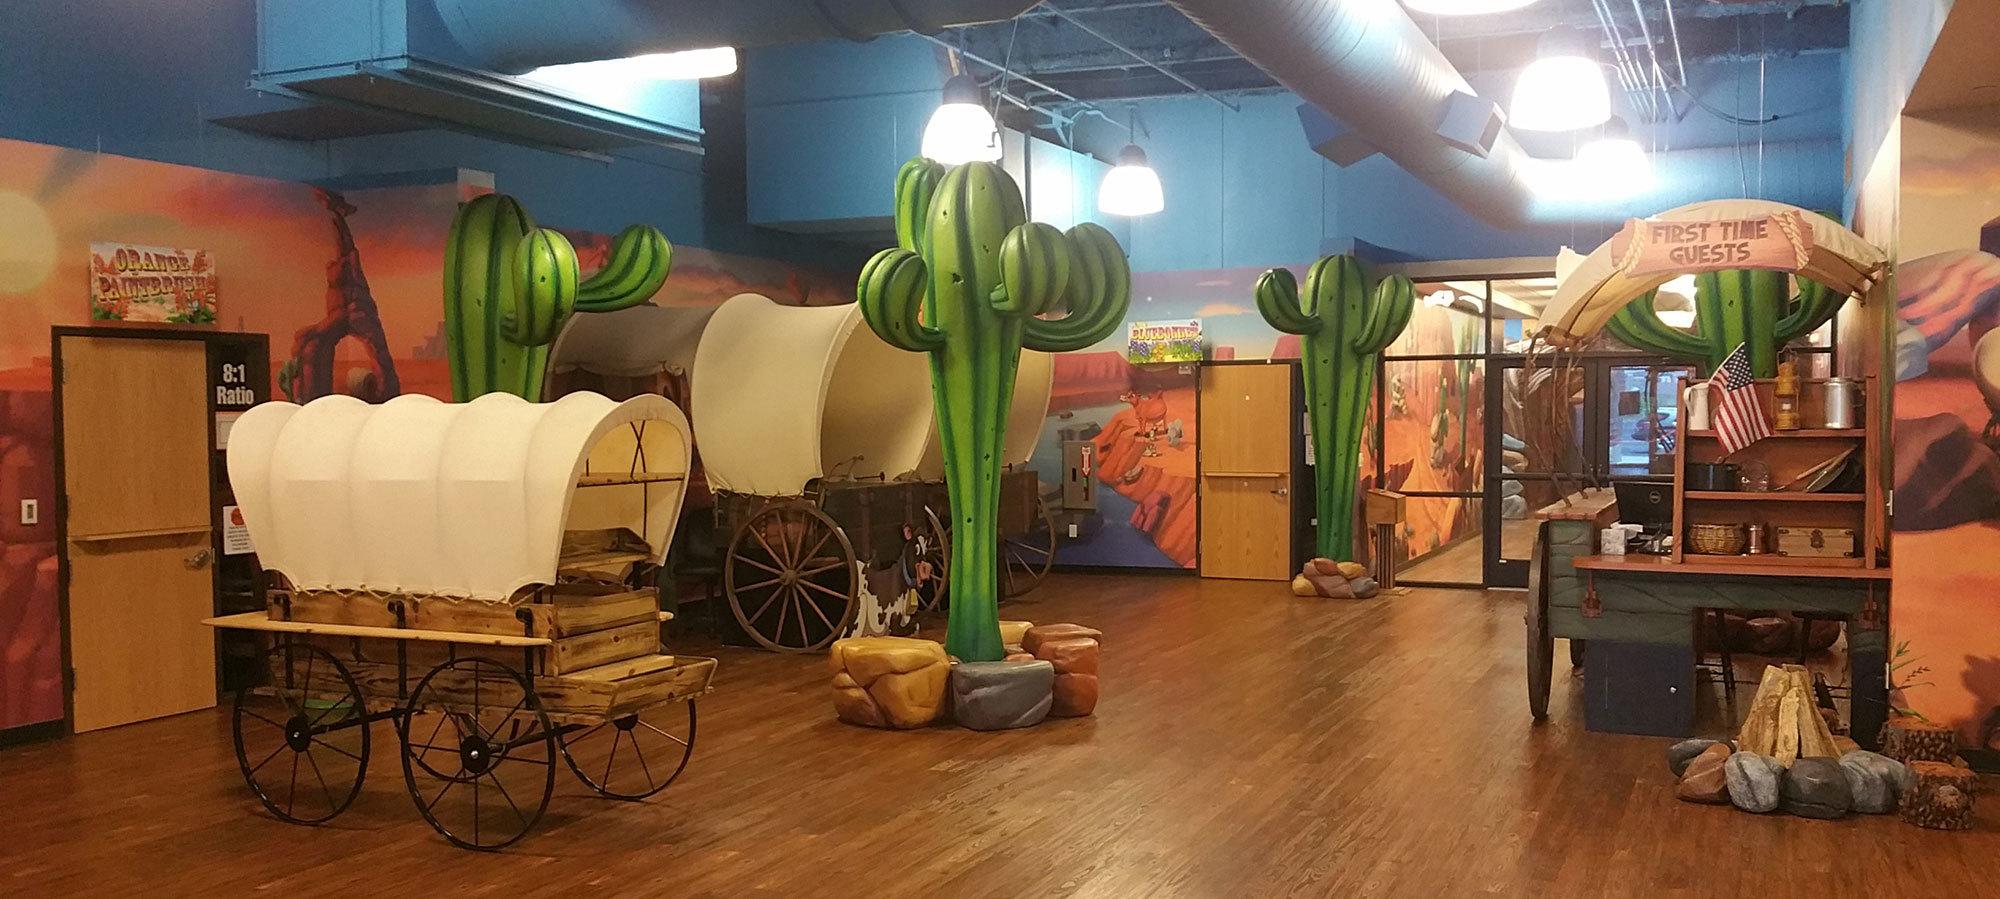 Old West Western Themed Environment at Crossroads Church Texas